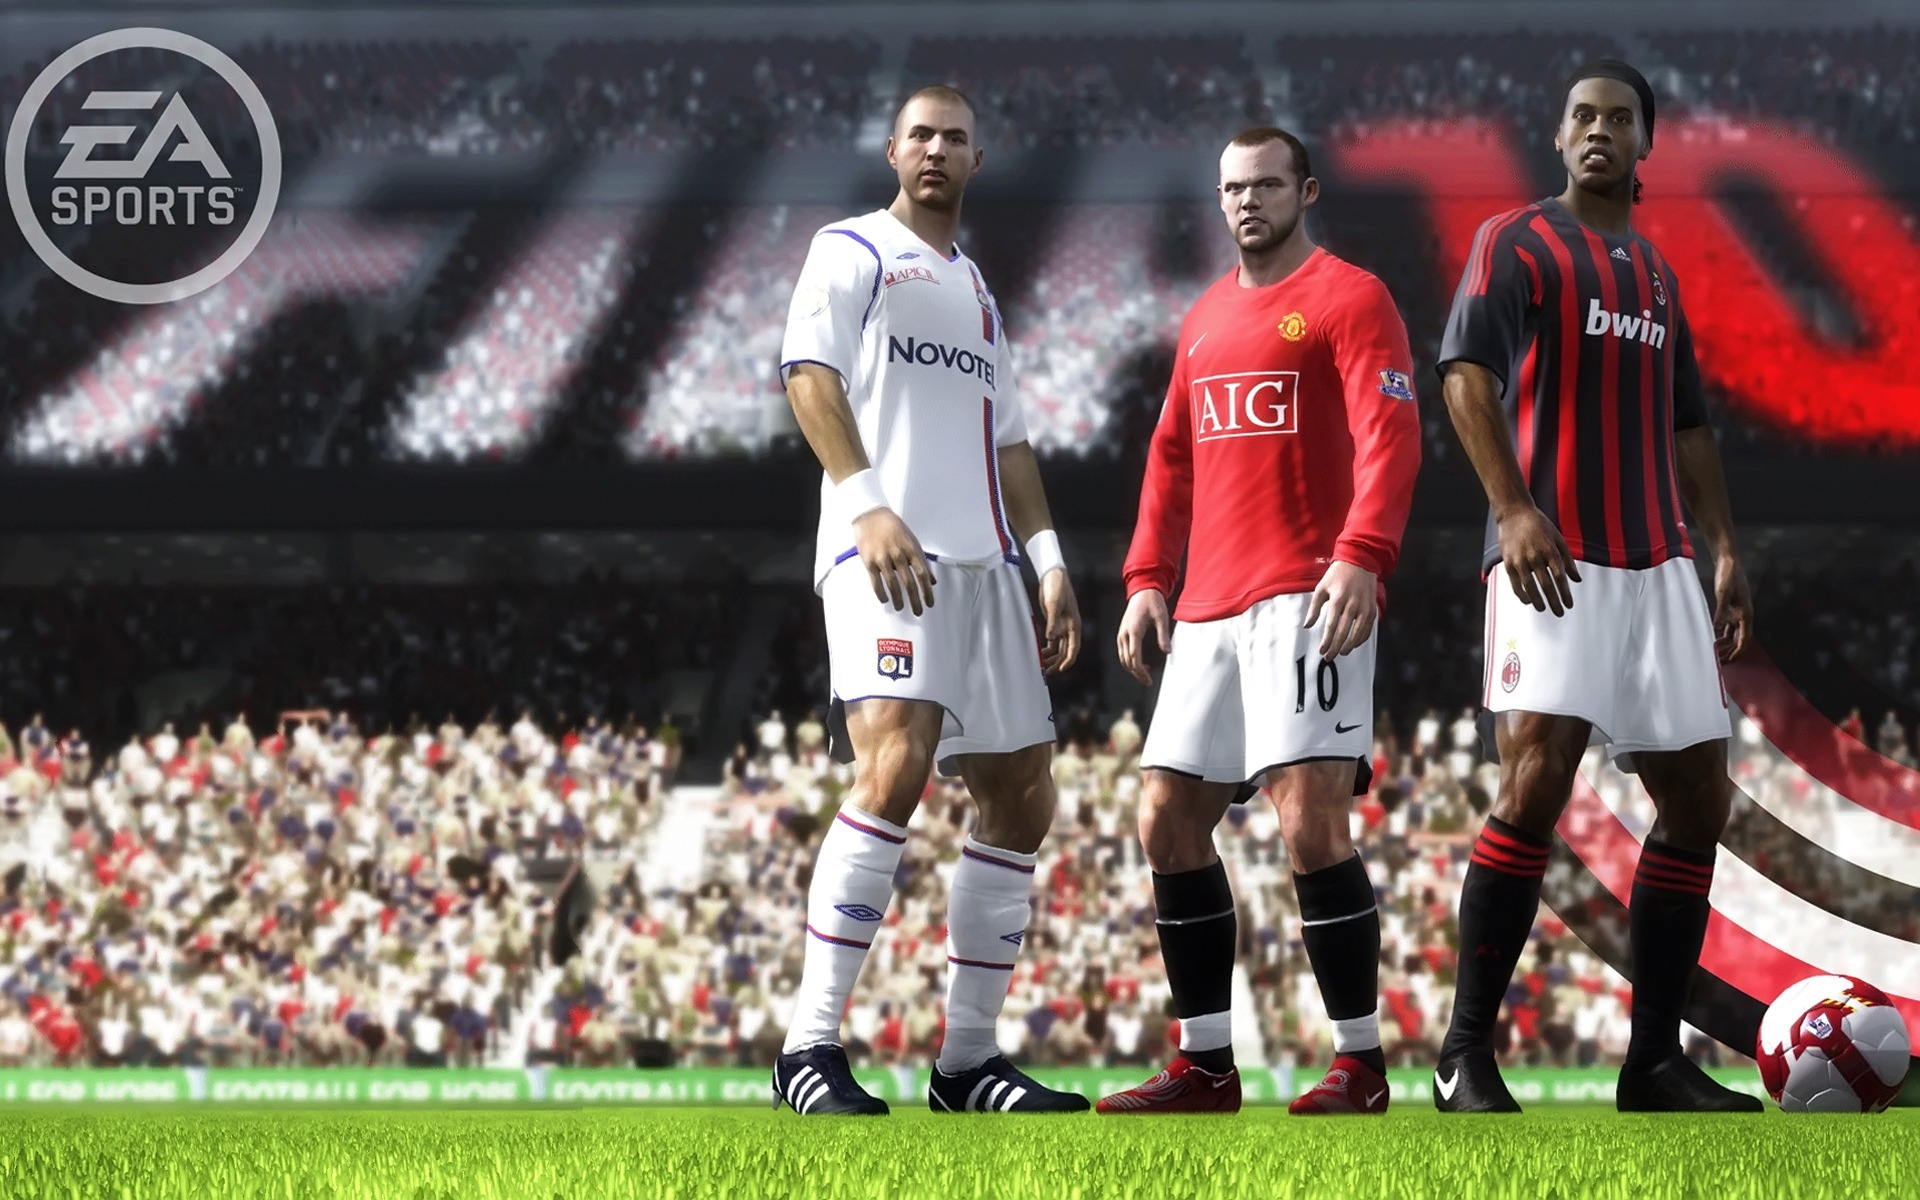 FIFA 10 Wallpaper Fifa Games Wallpapers